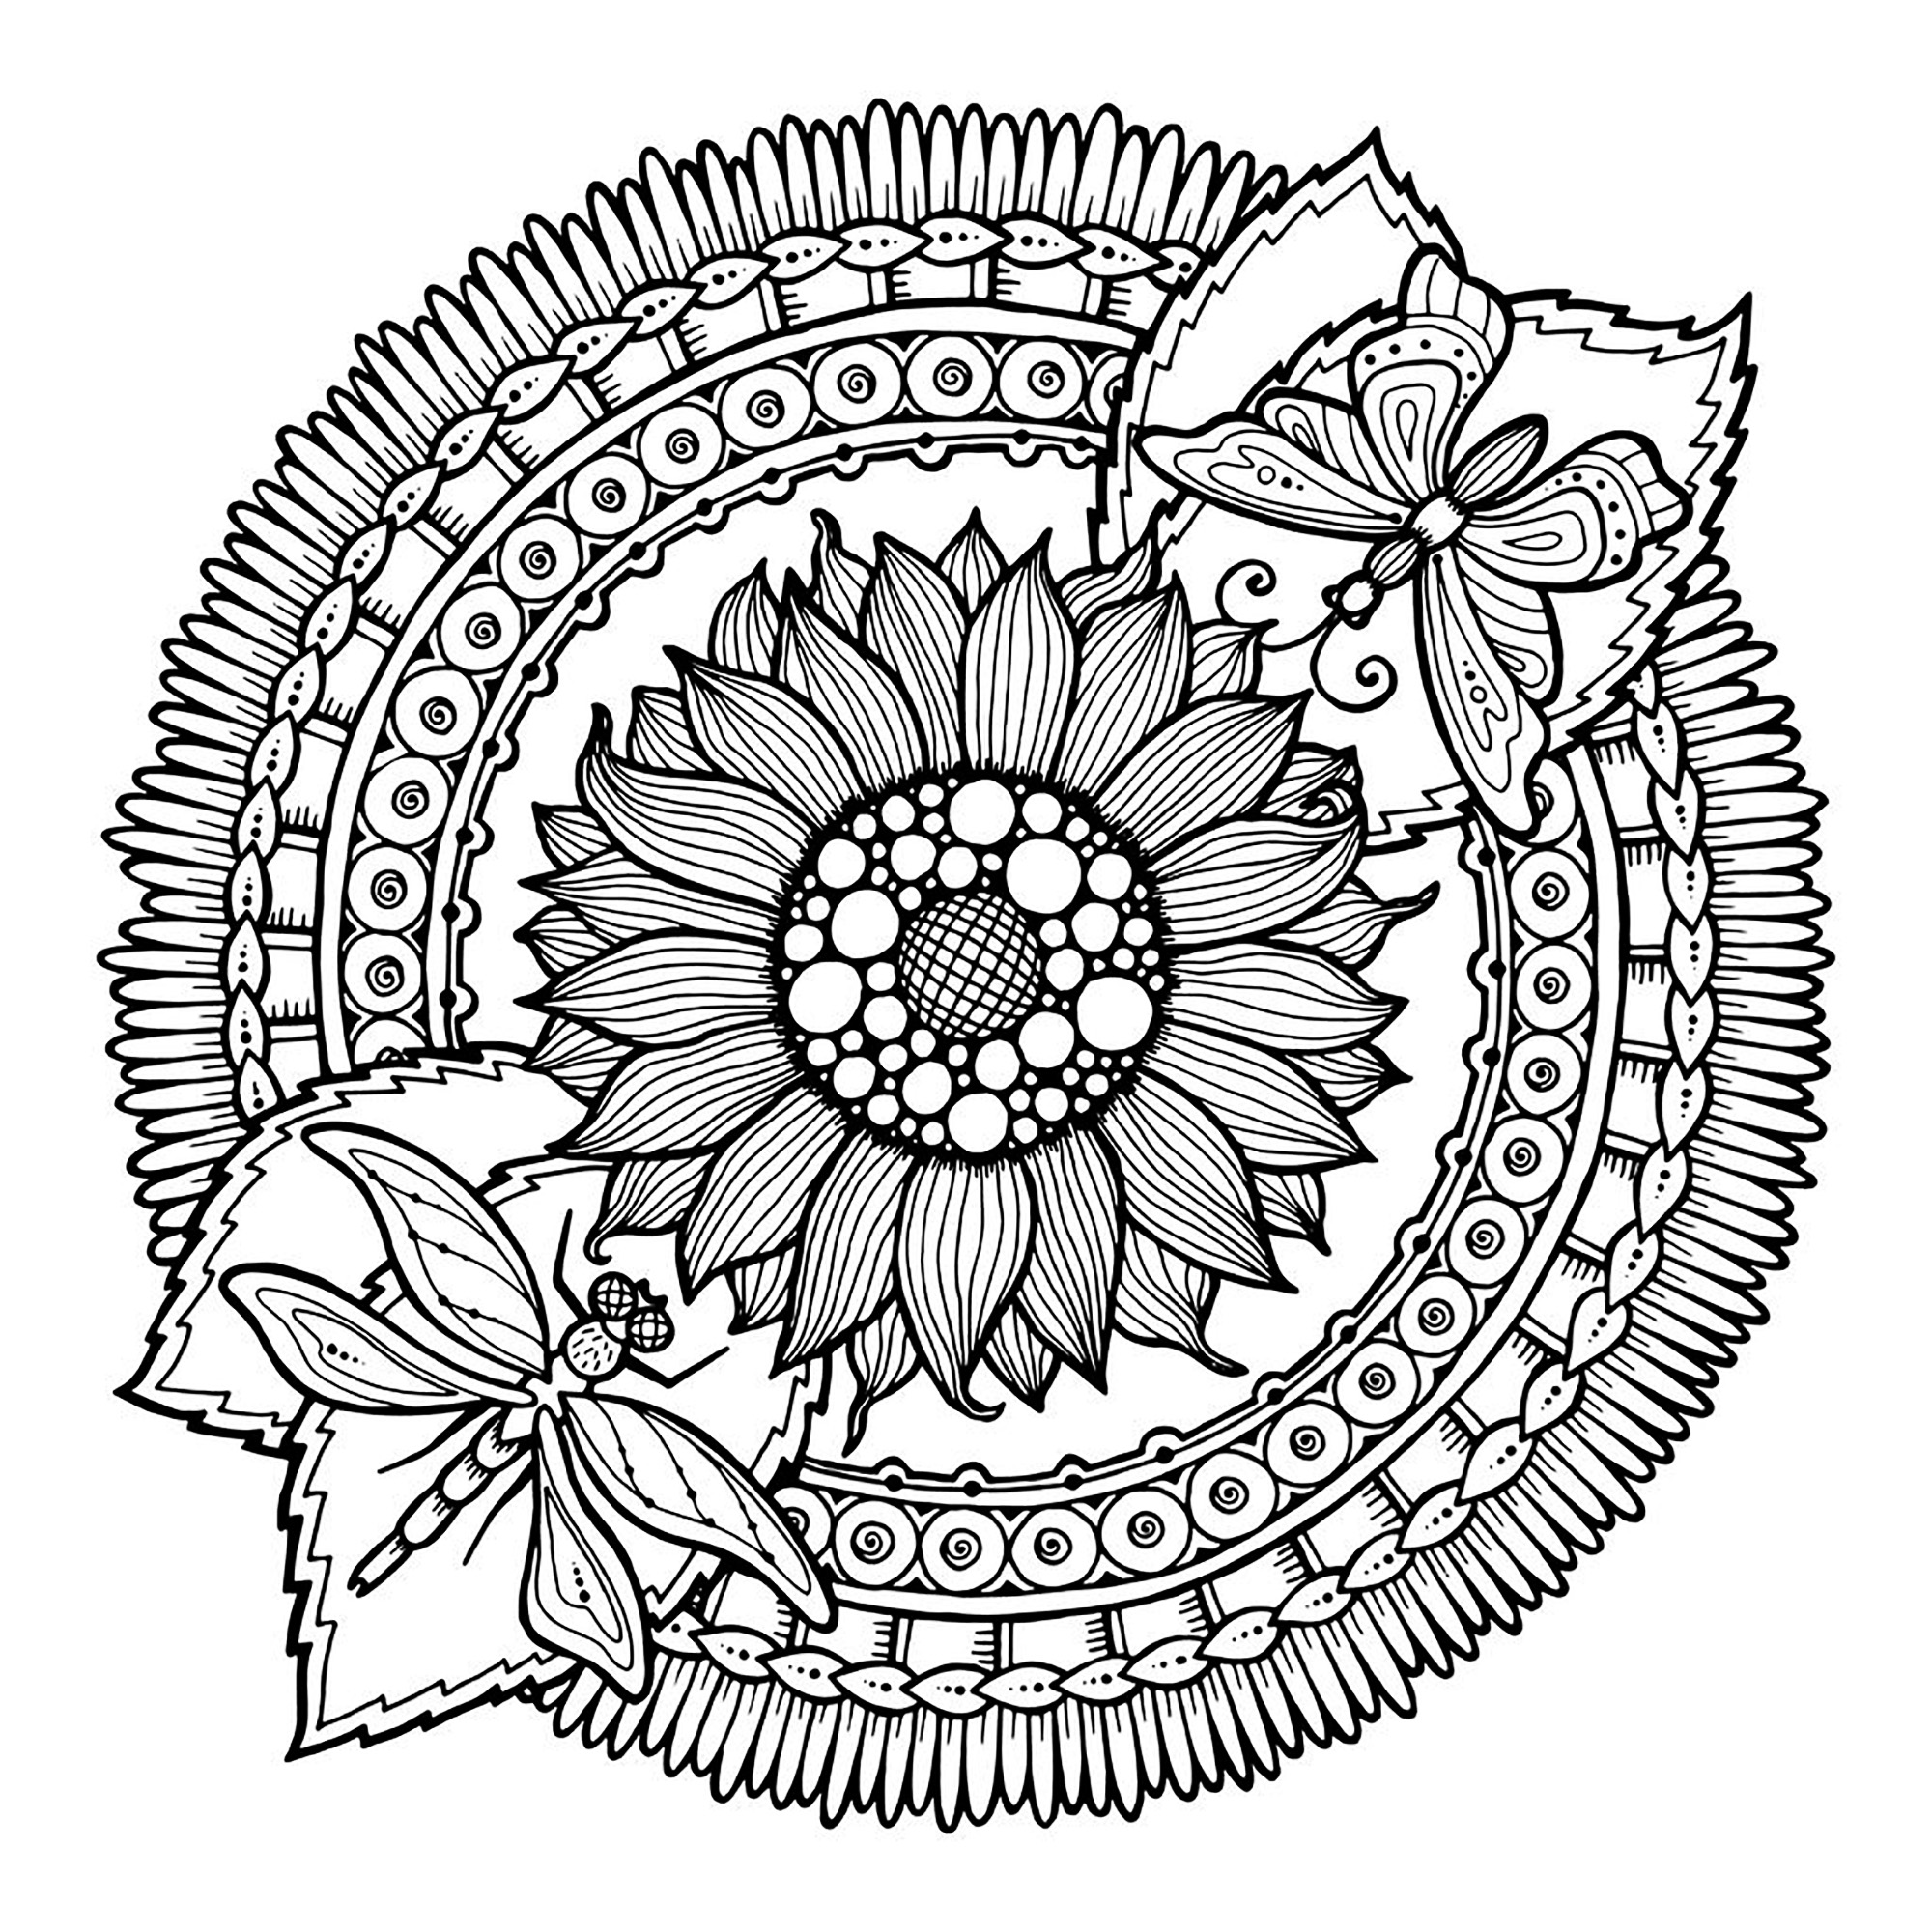 mandalas to color for adults mandala dragonfly and flowers malas adult coloring pages for adults mandalas to color